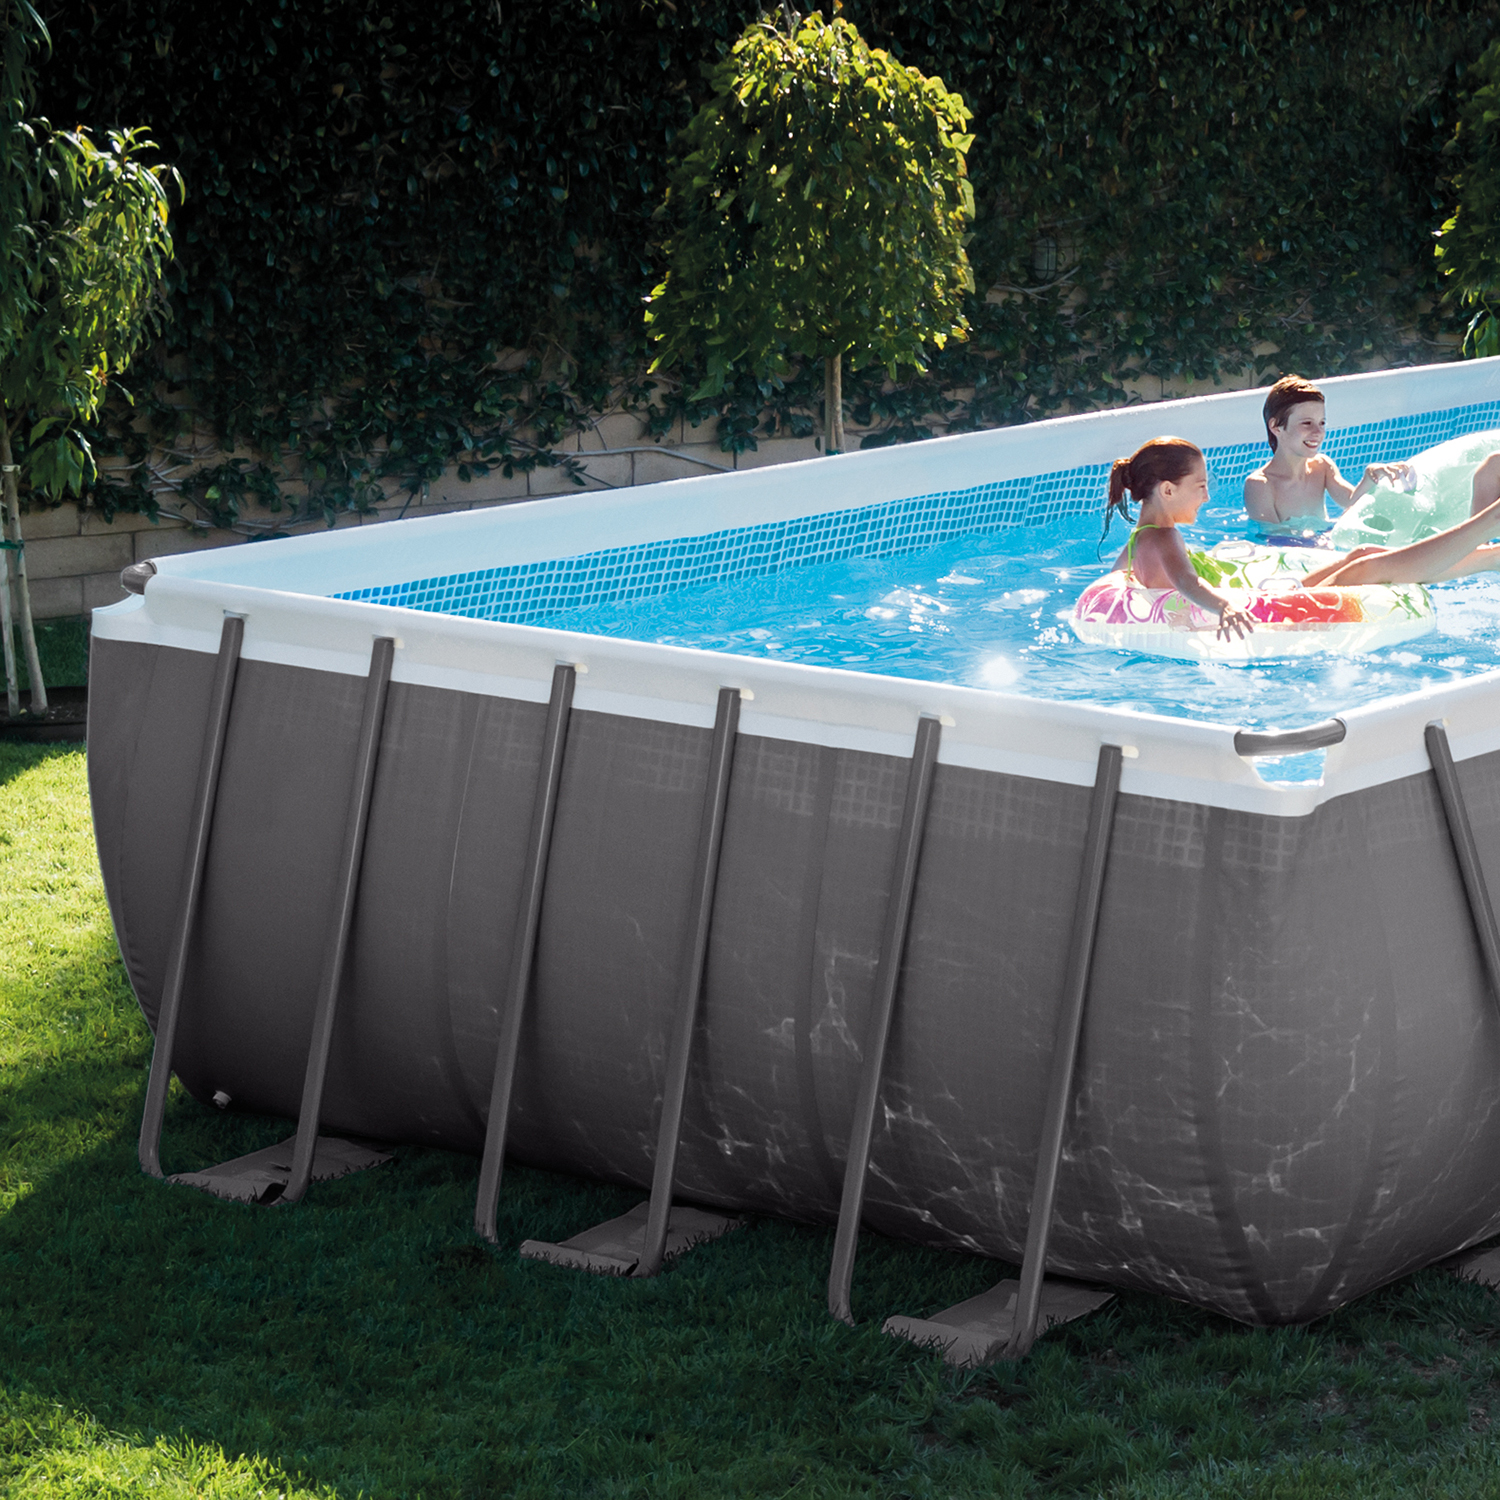 Intex 24 39 x 12 39 x 52 ultra frame rectangular swimming for Swimmingpool verkleidung